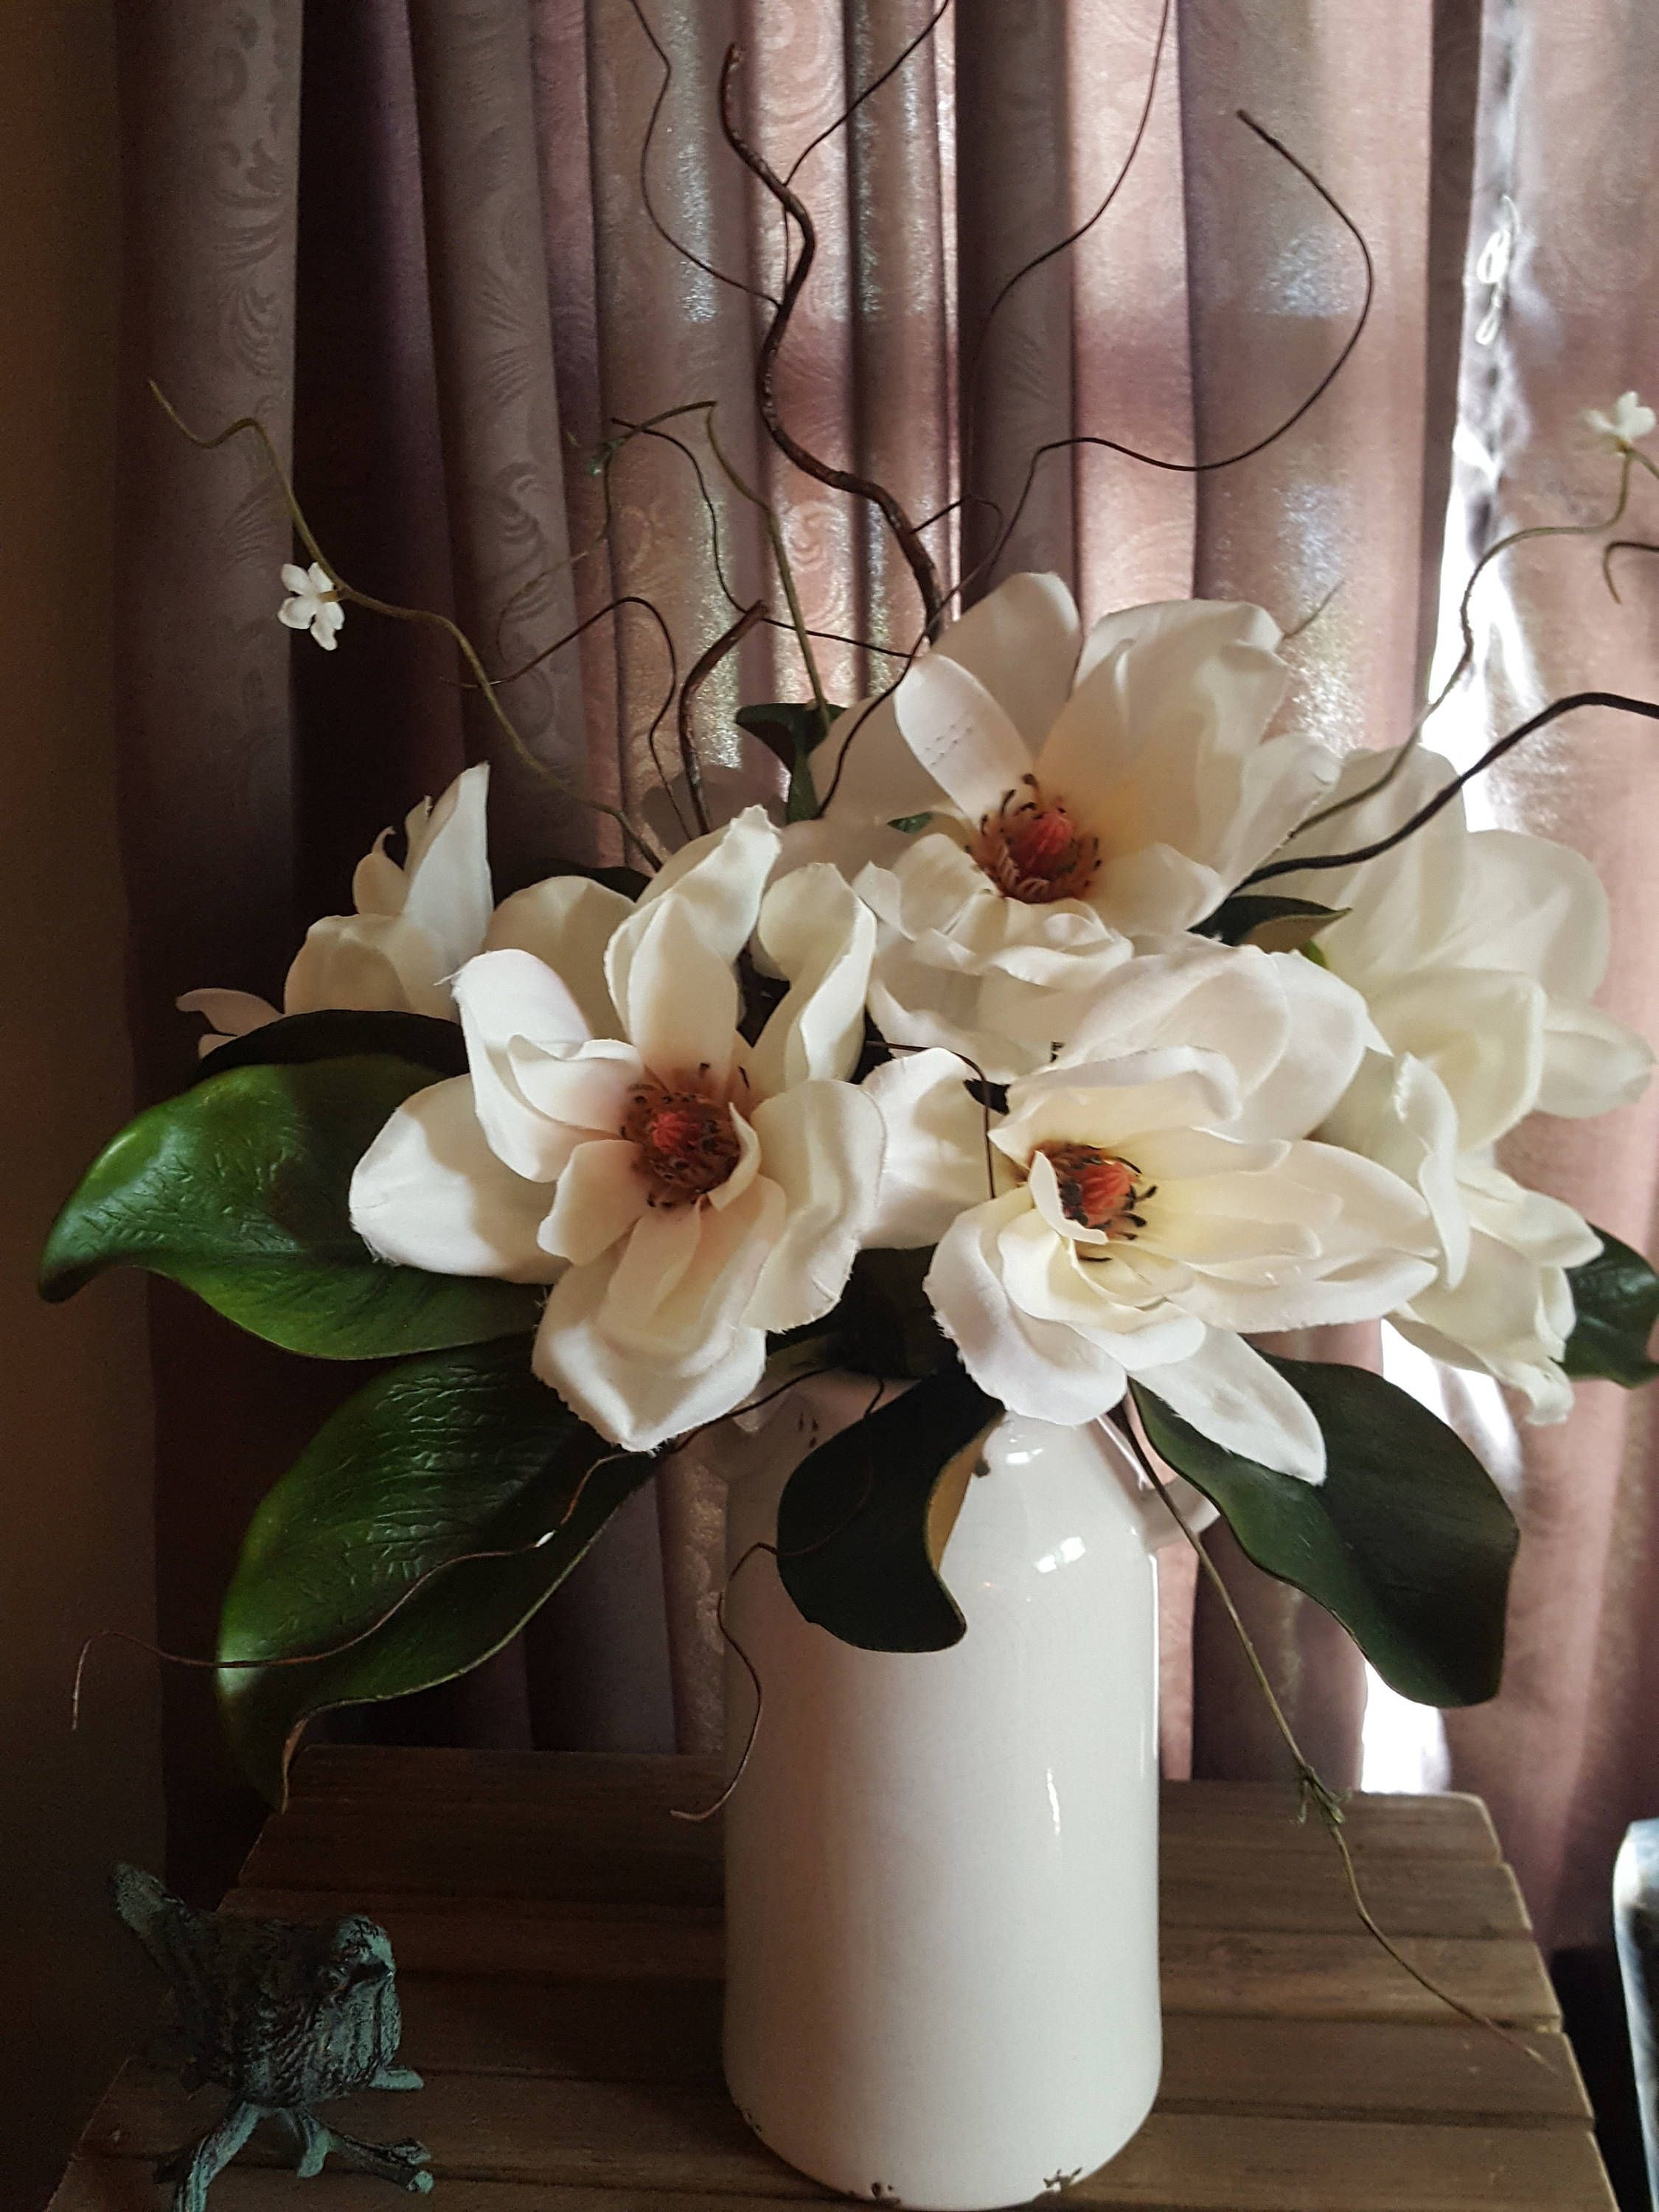 Farmhouse Arrangement Magnolia Arrangement Floral Centerpiece Design Ideas Magnolia Flower Arrangement 30 Luxury Magnolia